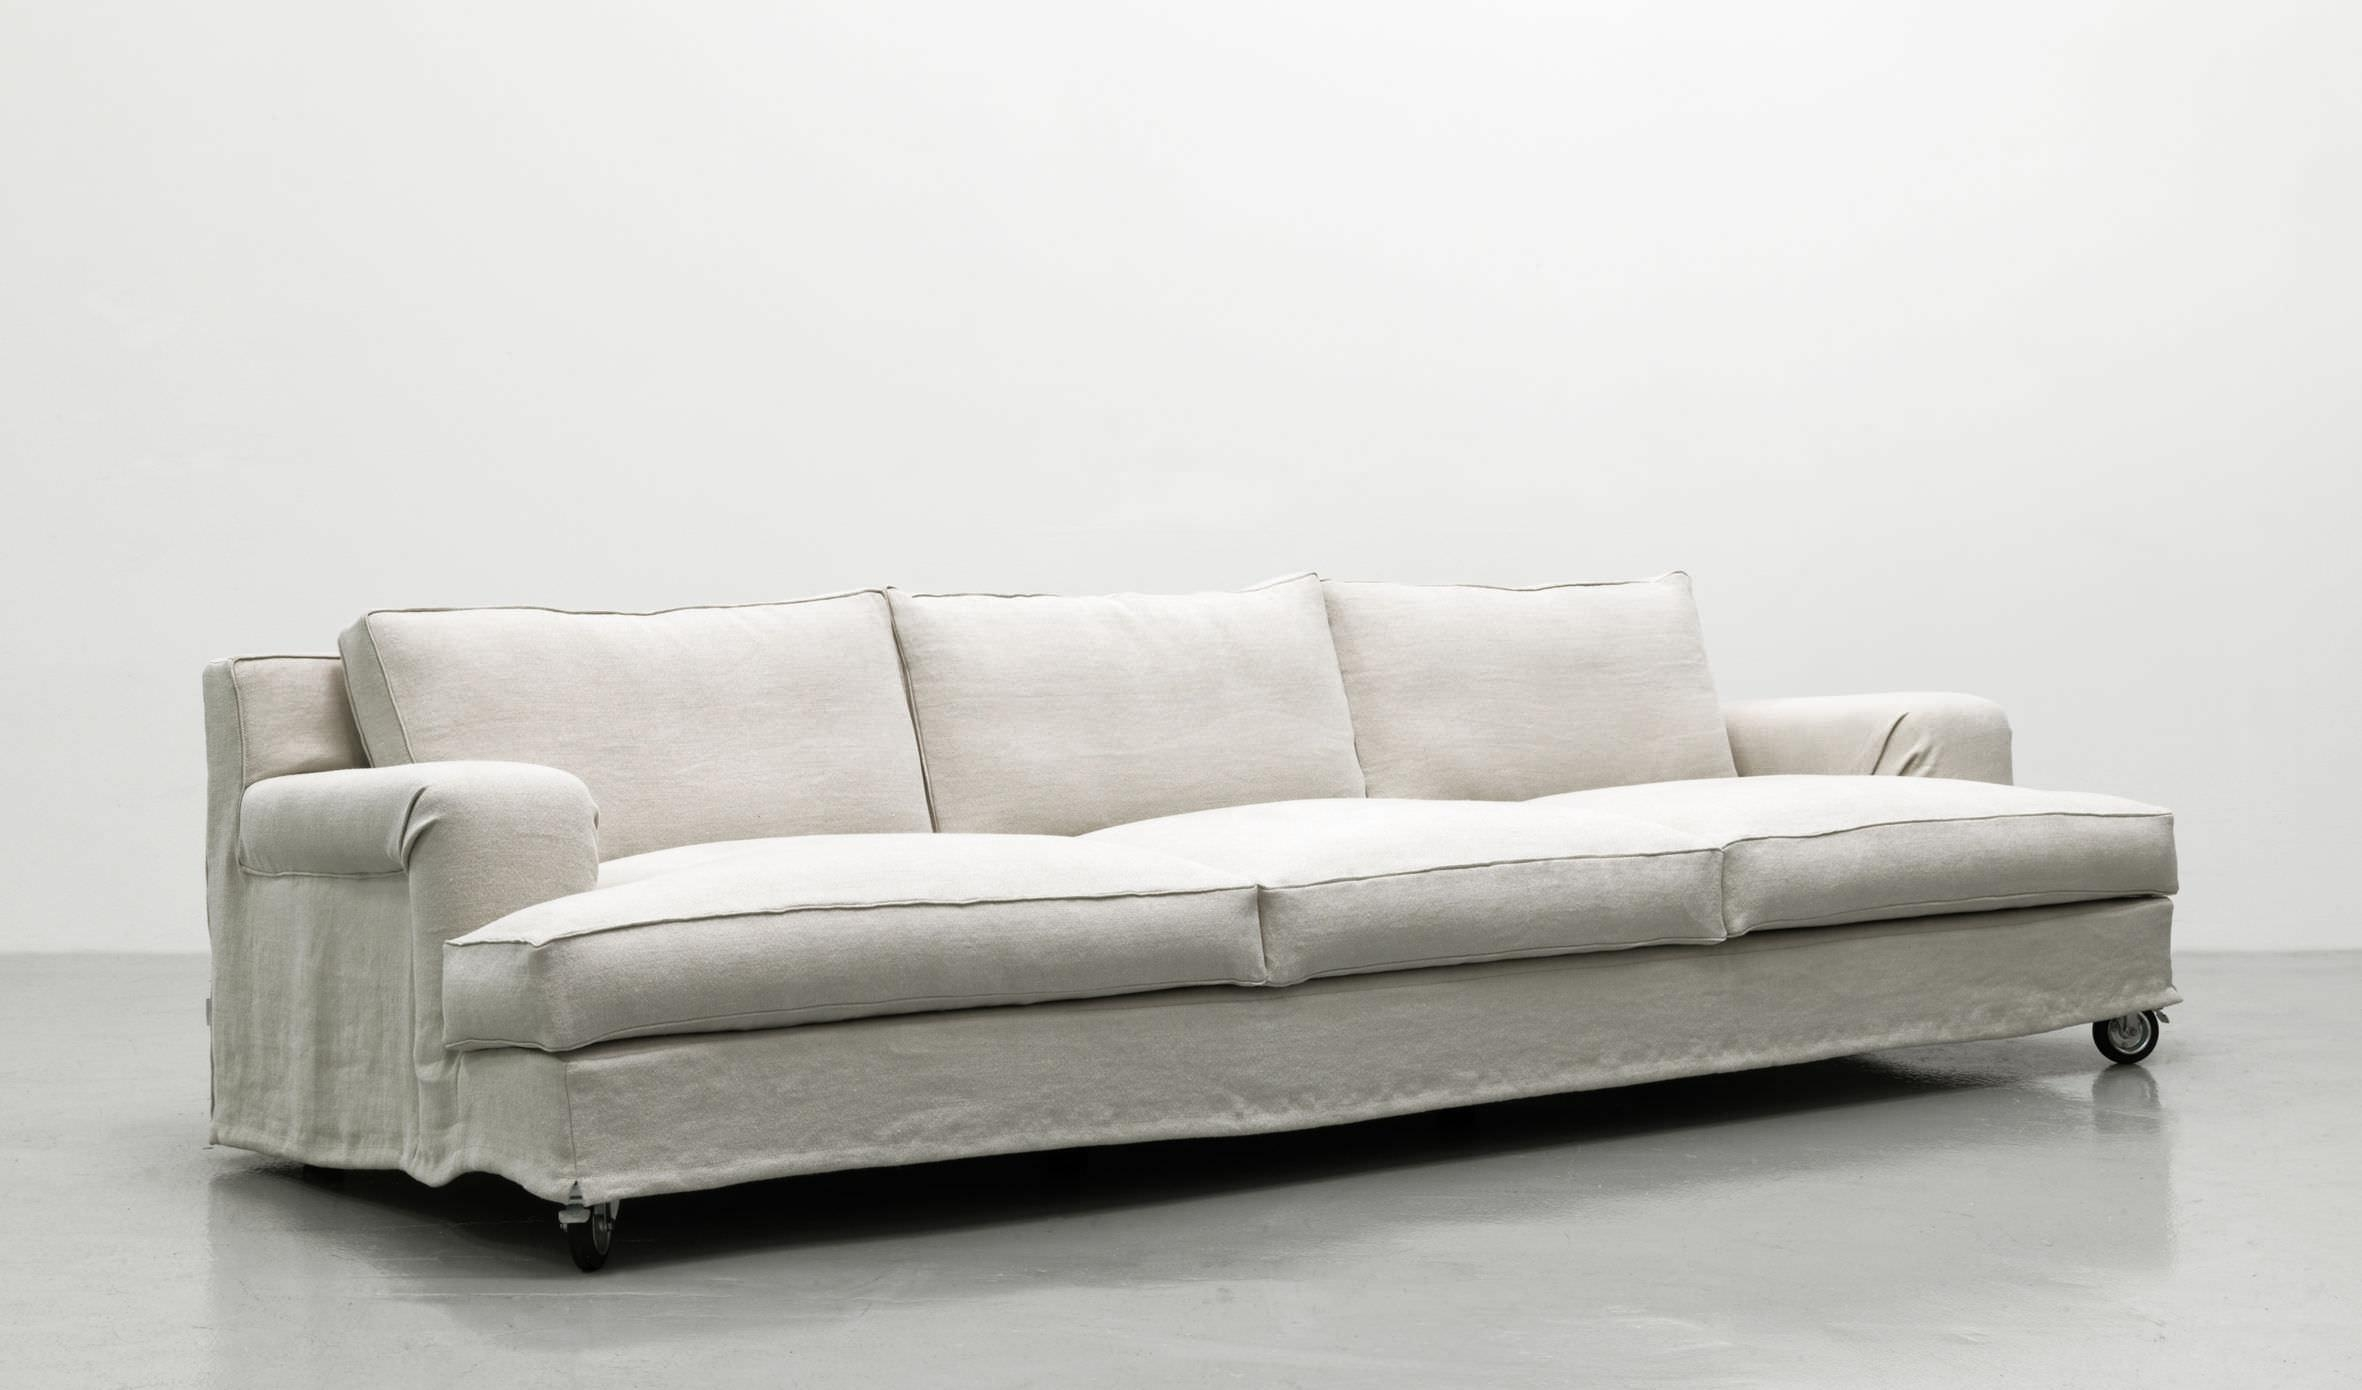 Contemporary Sofa / Fabric / 3 Seater / On Casters – Aberdeen Within Casters Sofas (View 12 of 20)